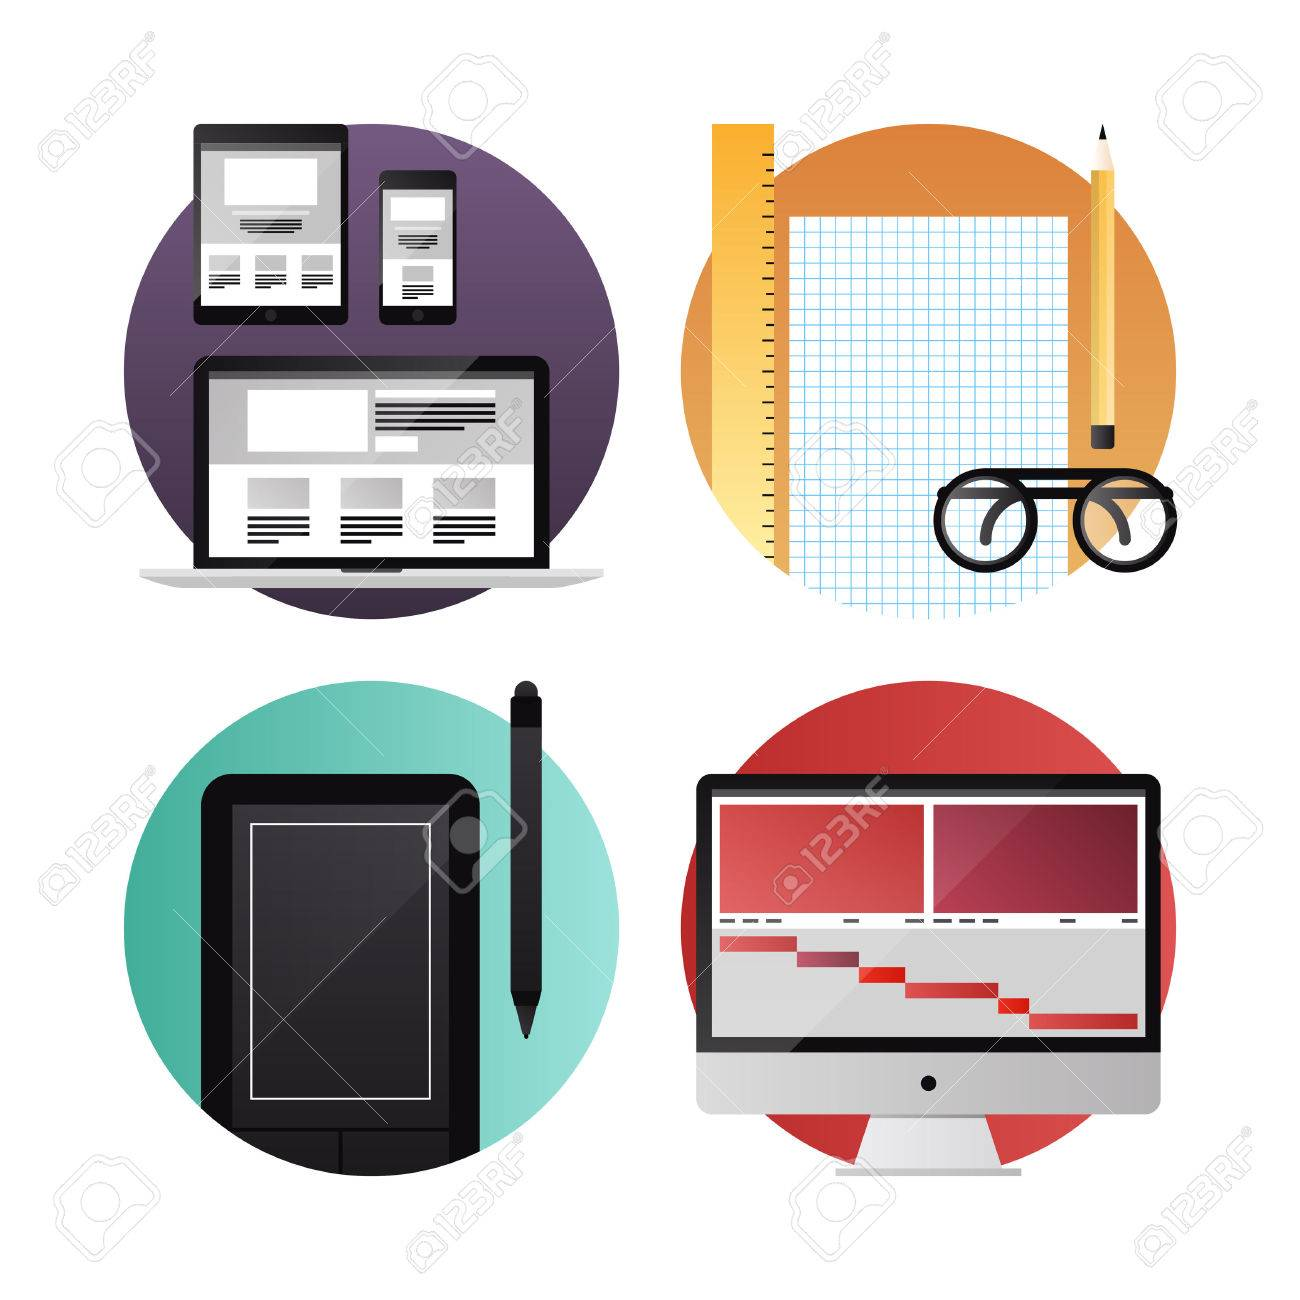 Flat icons set modern vector illustration concept of digital tablet, mobile phone and computer with web, graphic and video design process development  Isolated on white background Stock Vector - 26073568